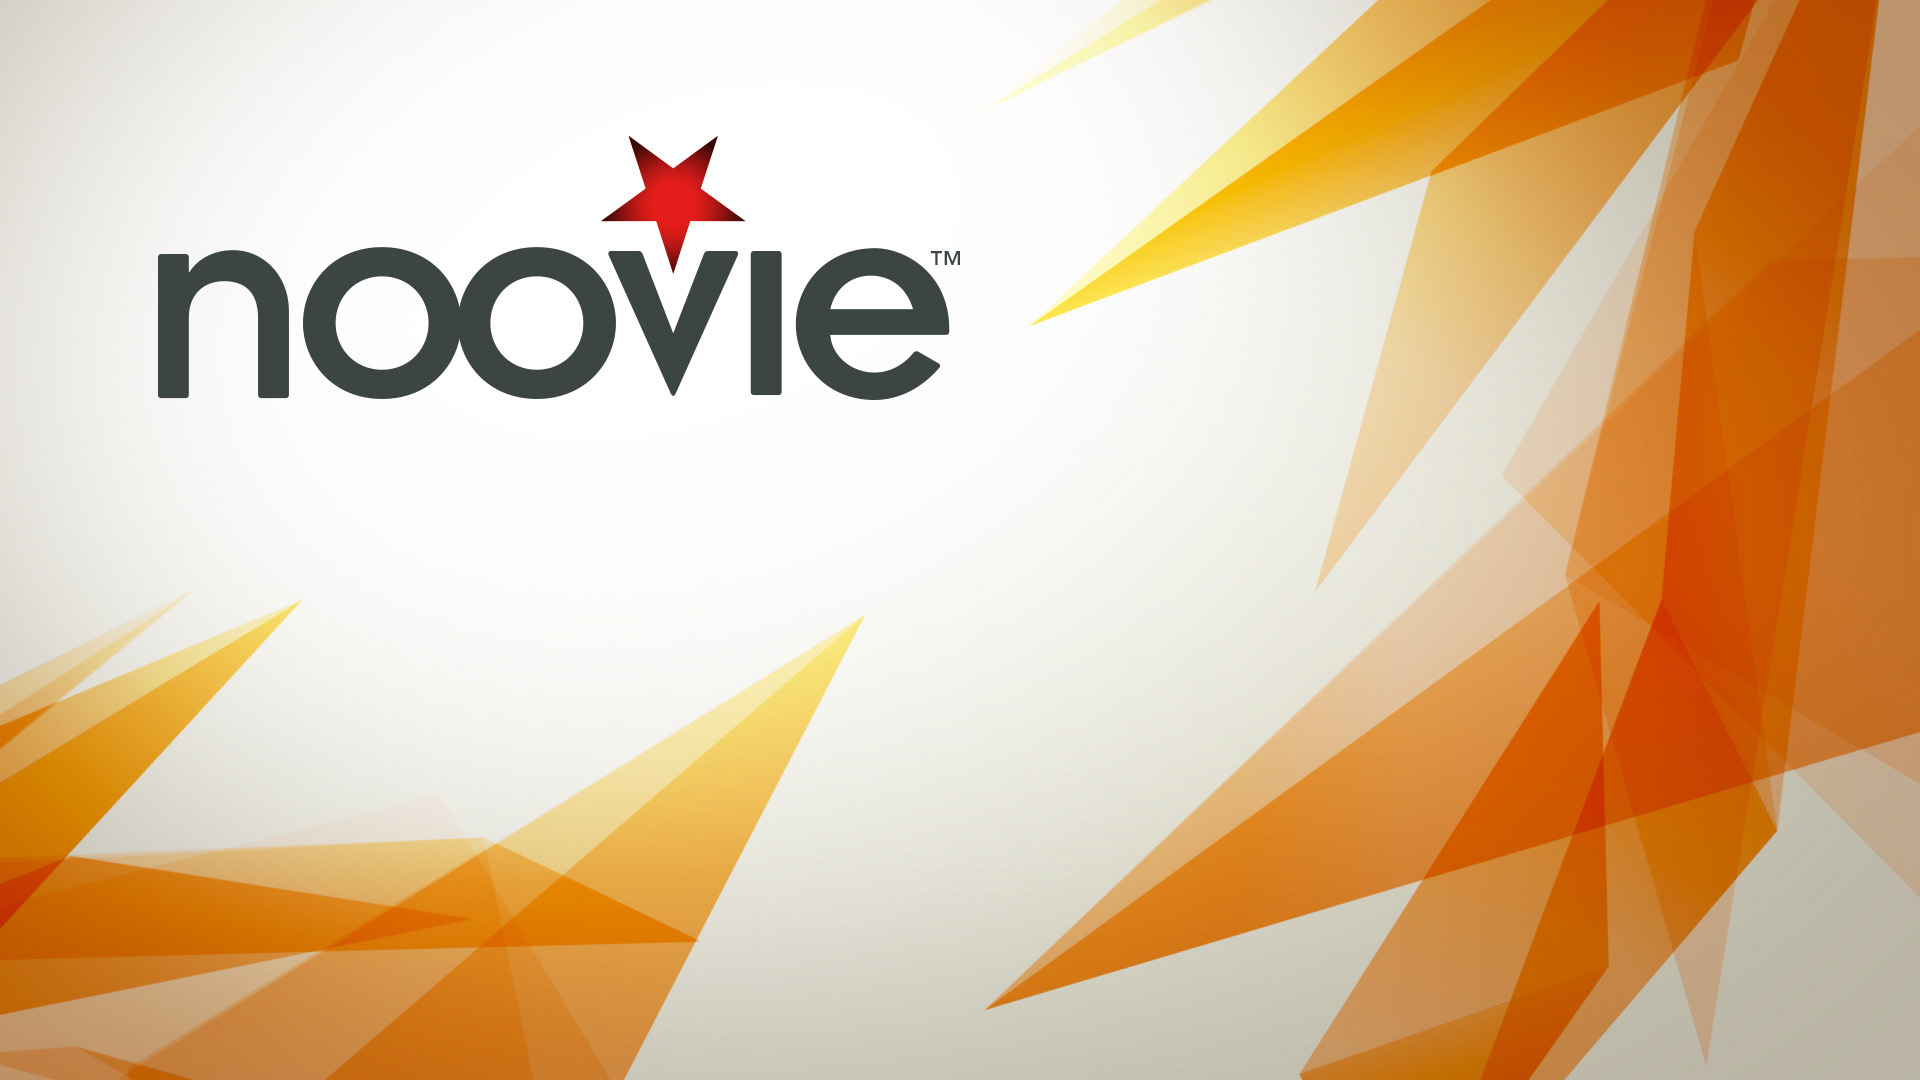 National CineMedia (NCM) Launches Noovie Pre-Show In Movie Theaters ...